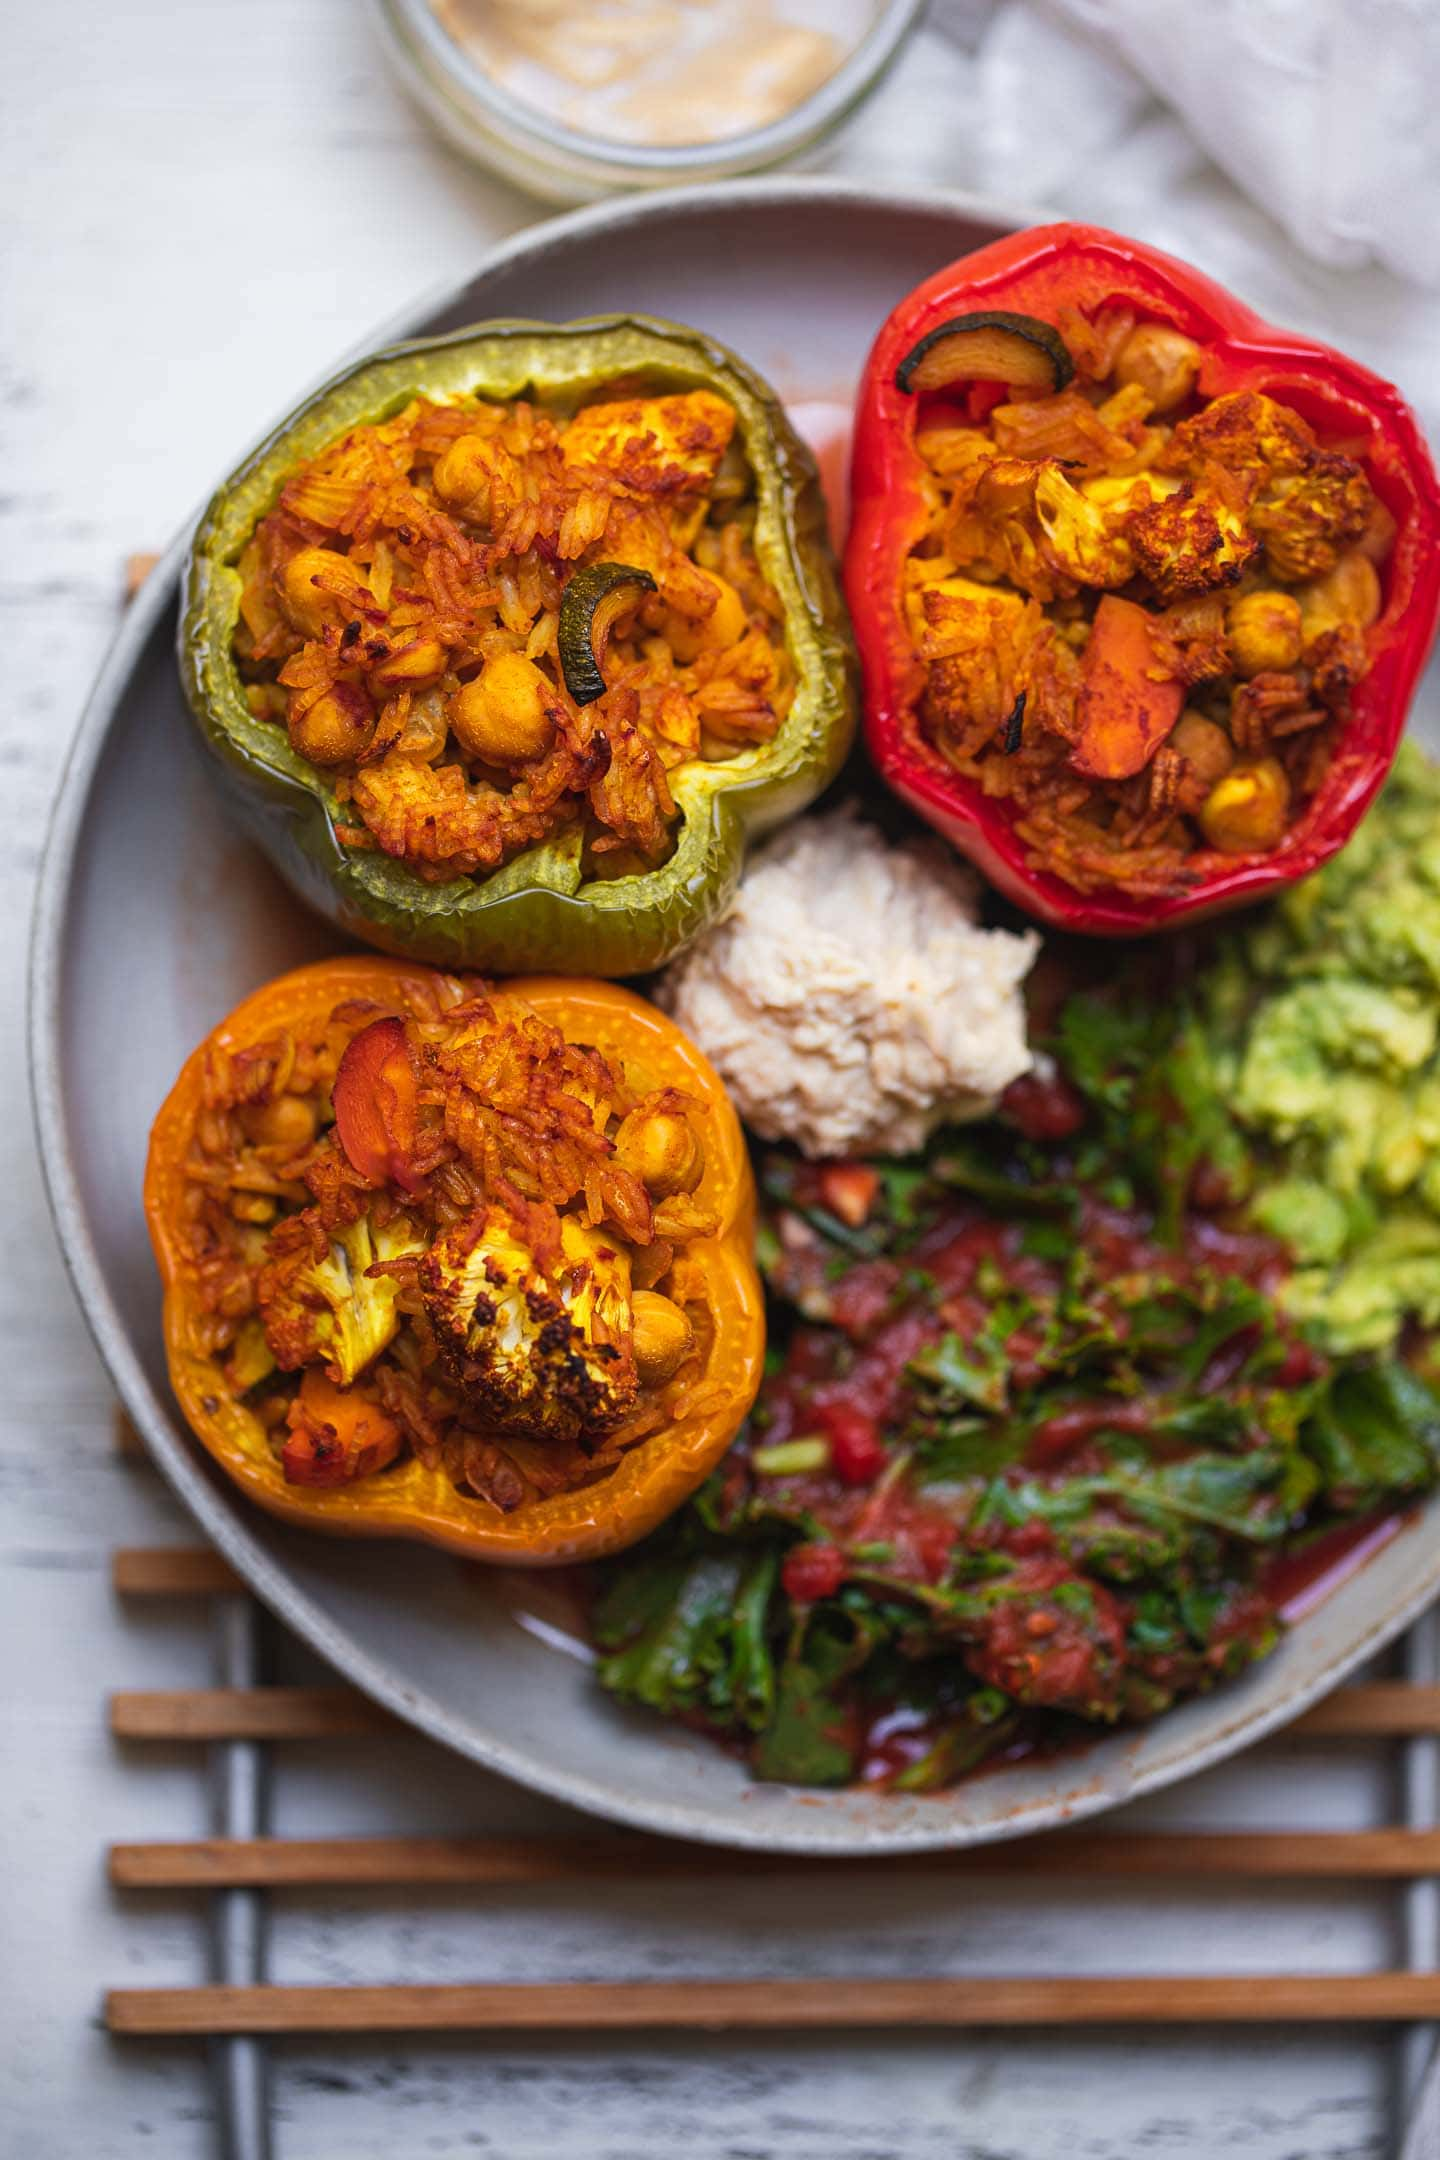 Stuffed peppers with cauliflower, chickpeas and rice